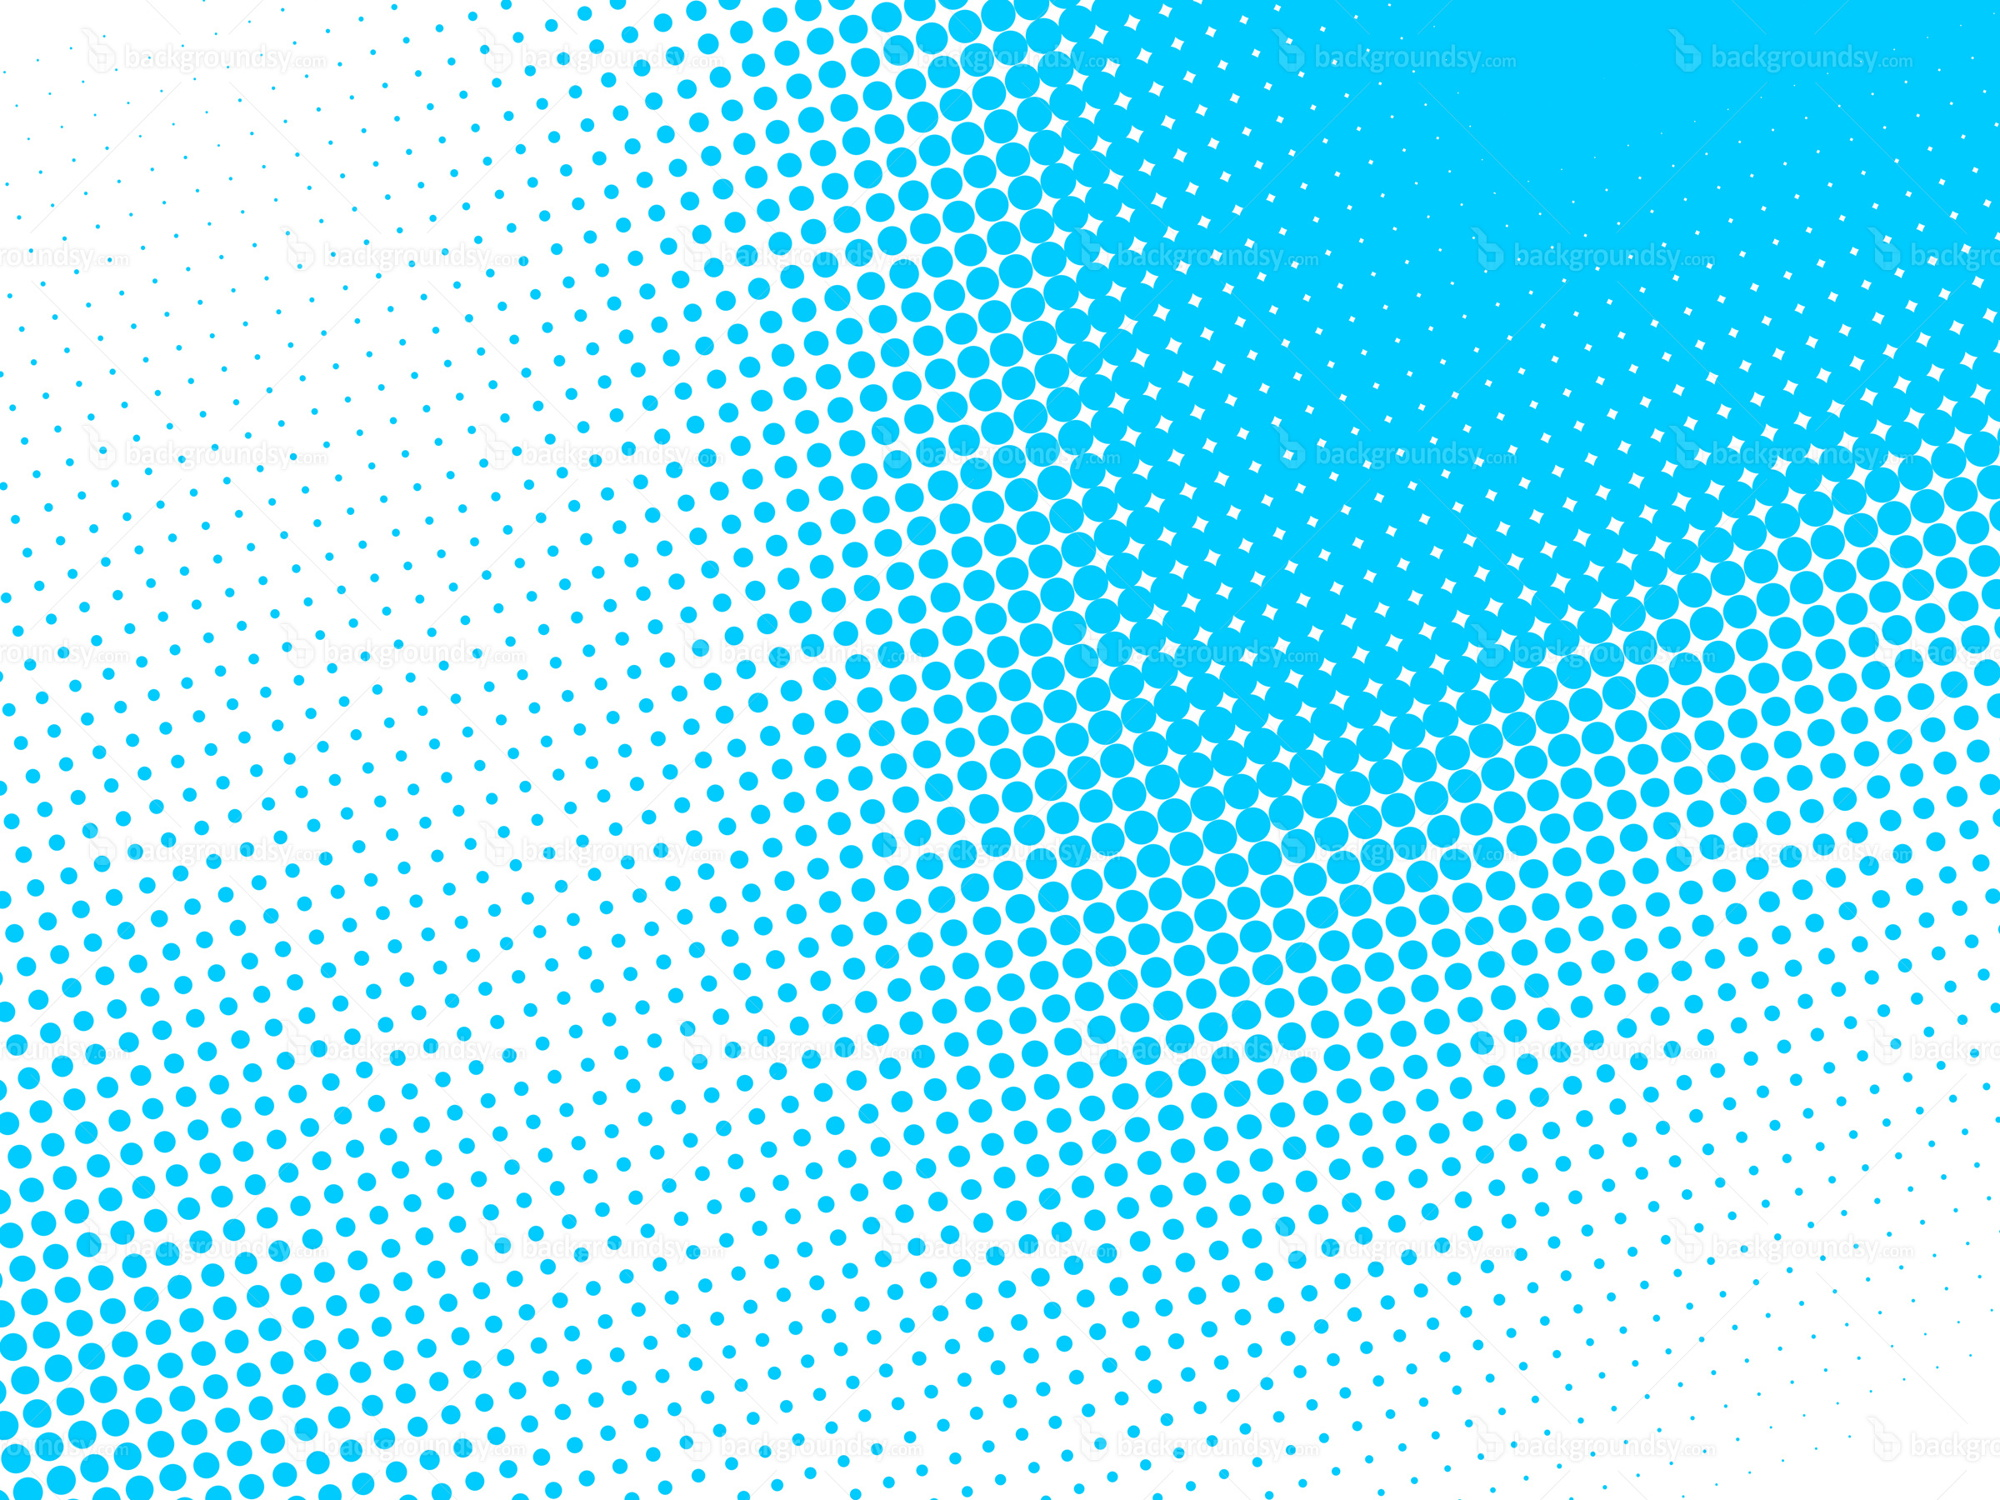 light blue pattern backgroundsycom